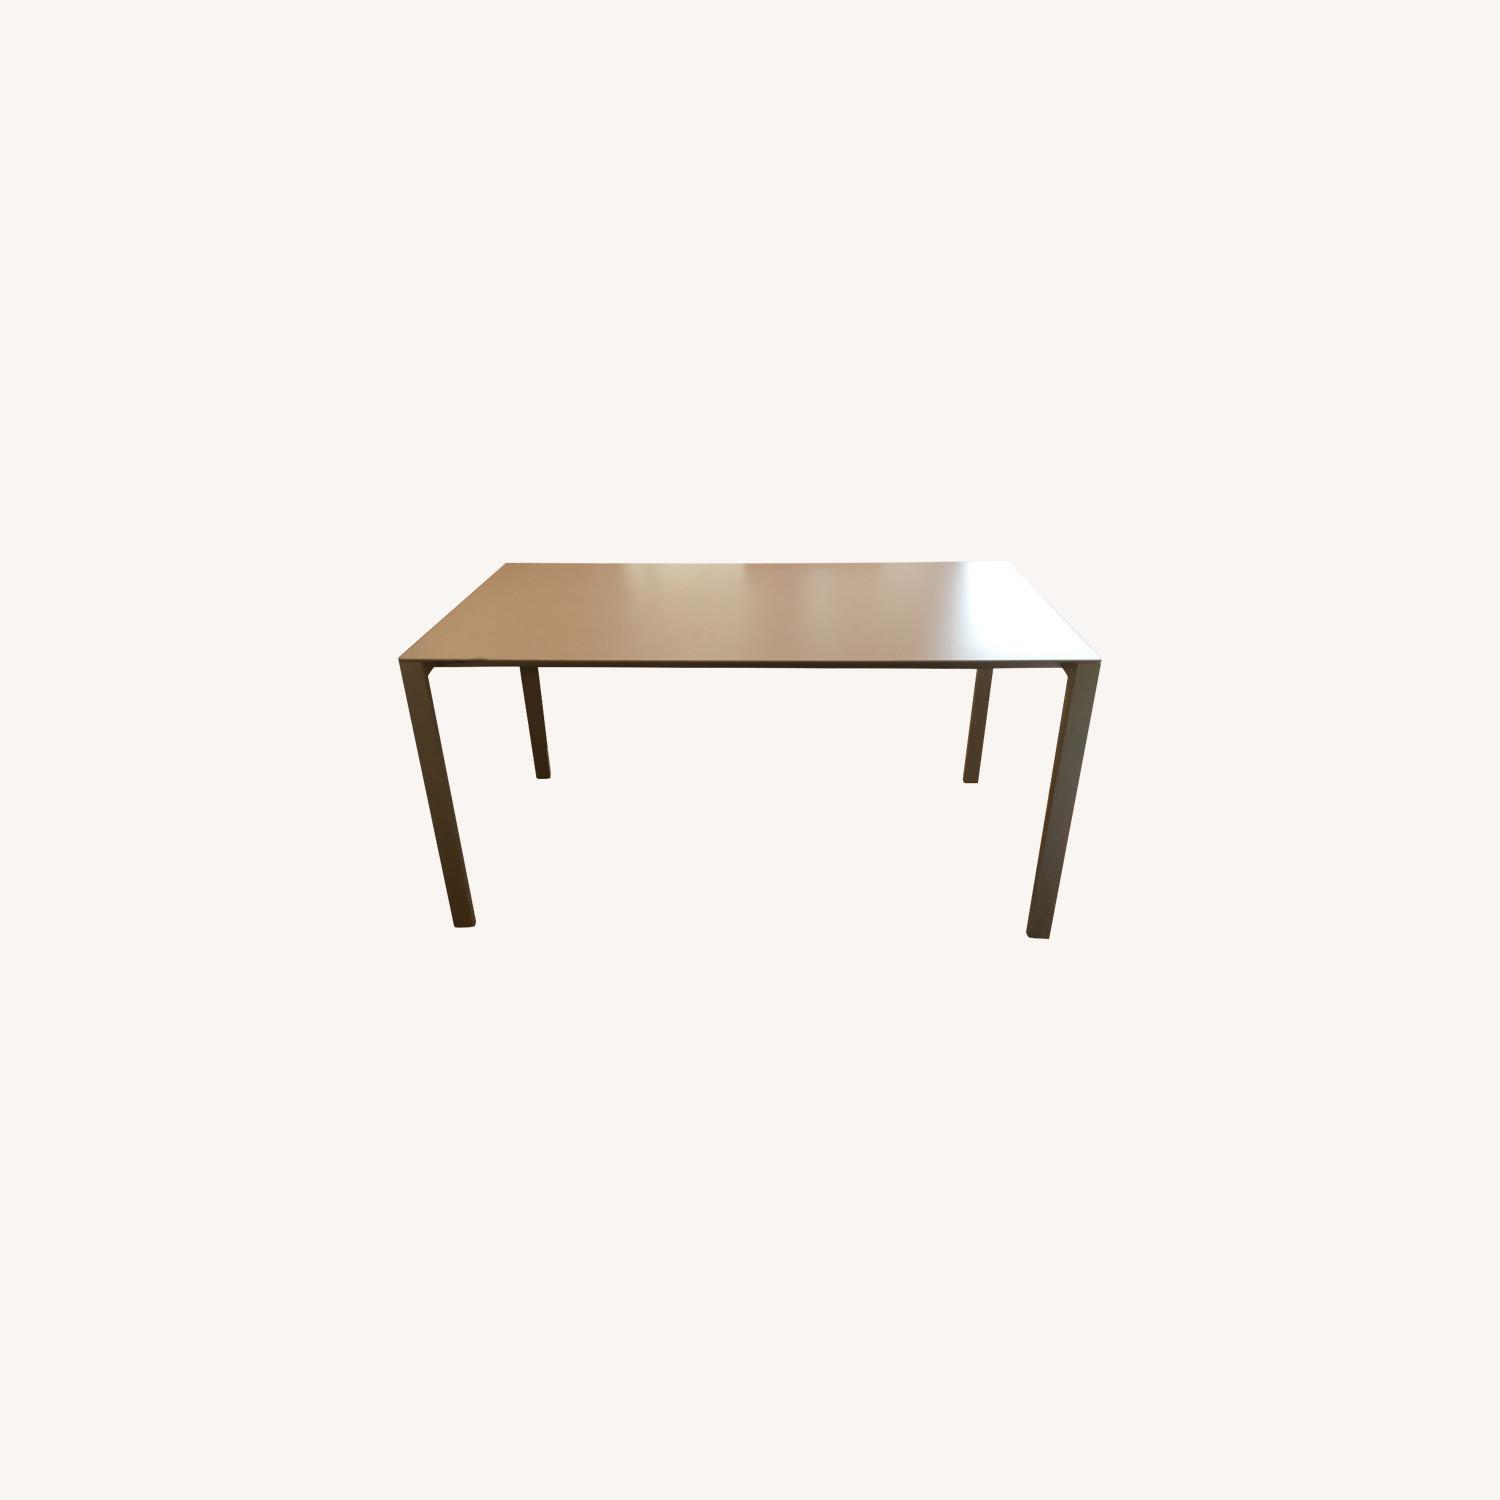 CB2 Expendable White Dinning table (Seat up to 8) - image-0